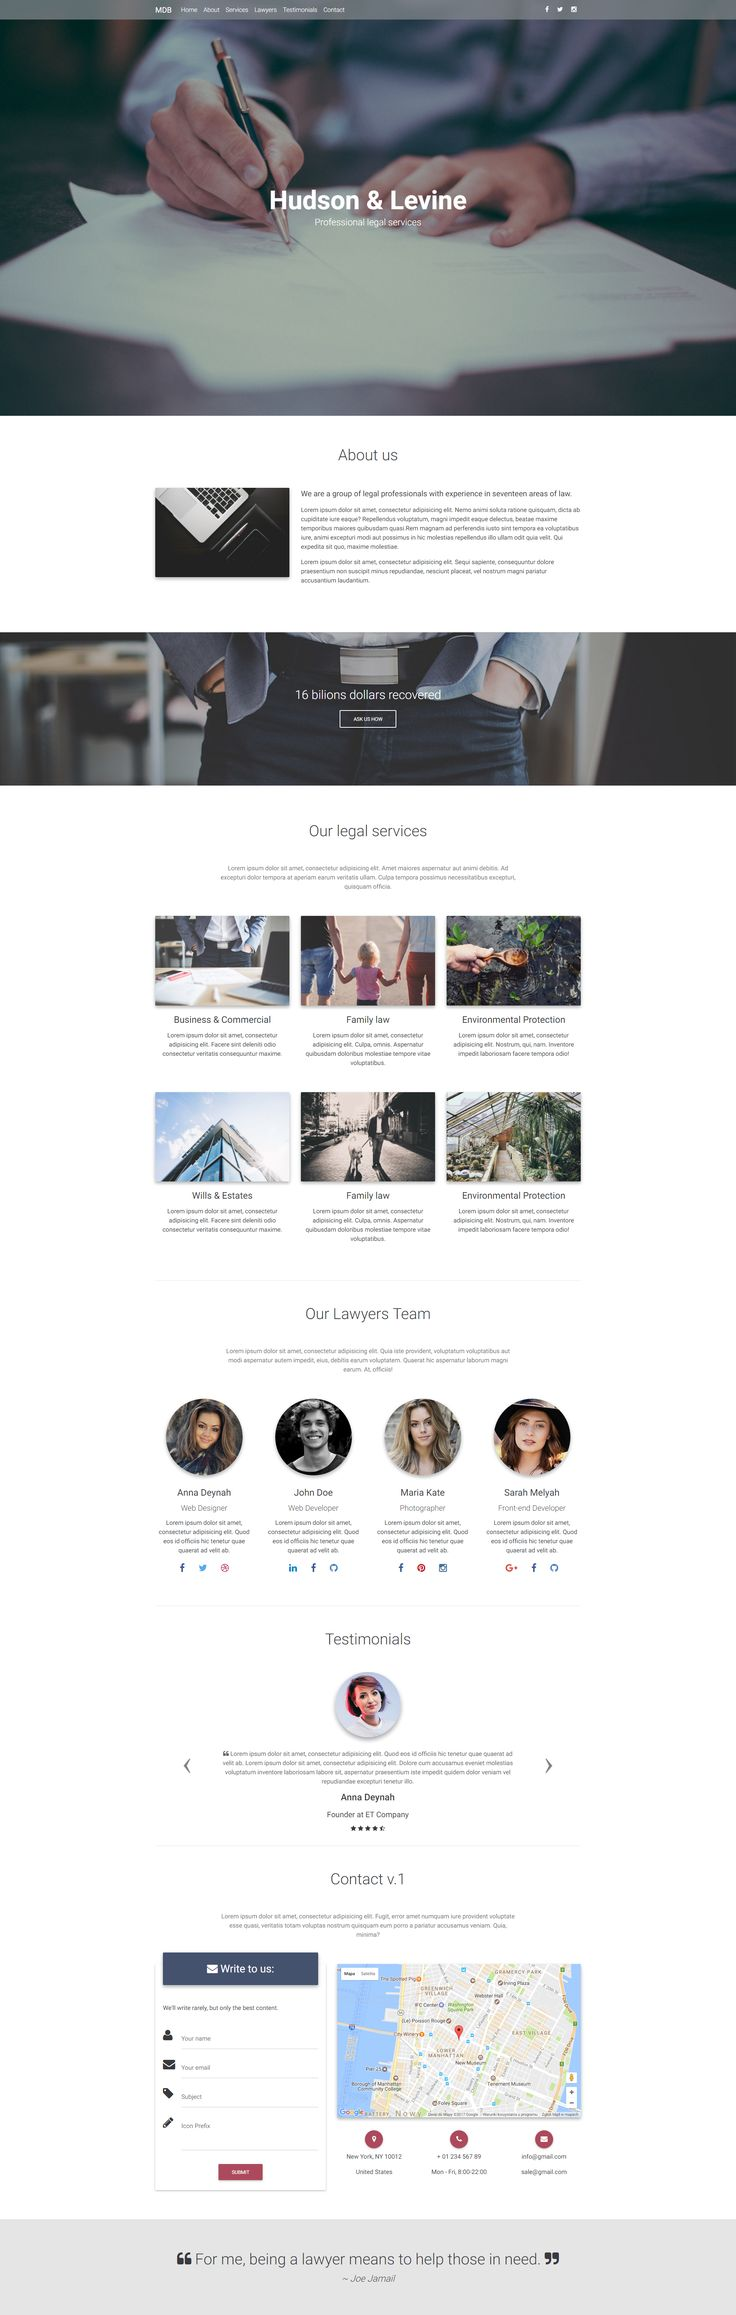 Fully responsive Legal Portfolio Landing Page created with Material Design for Bootstrap